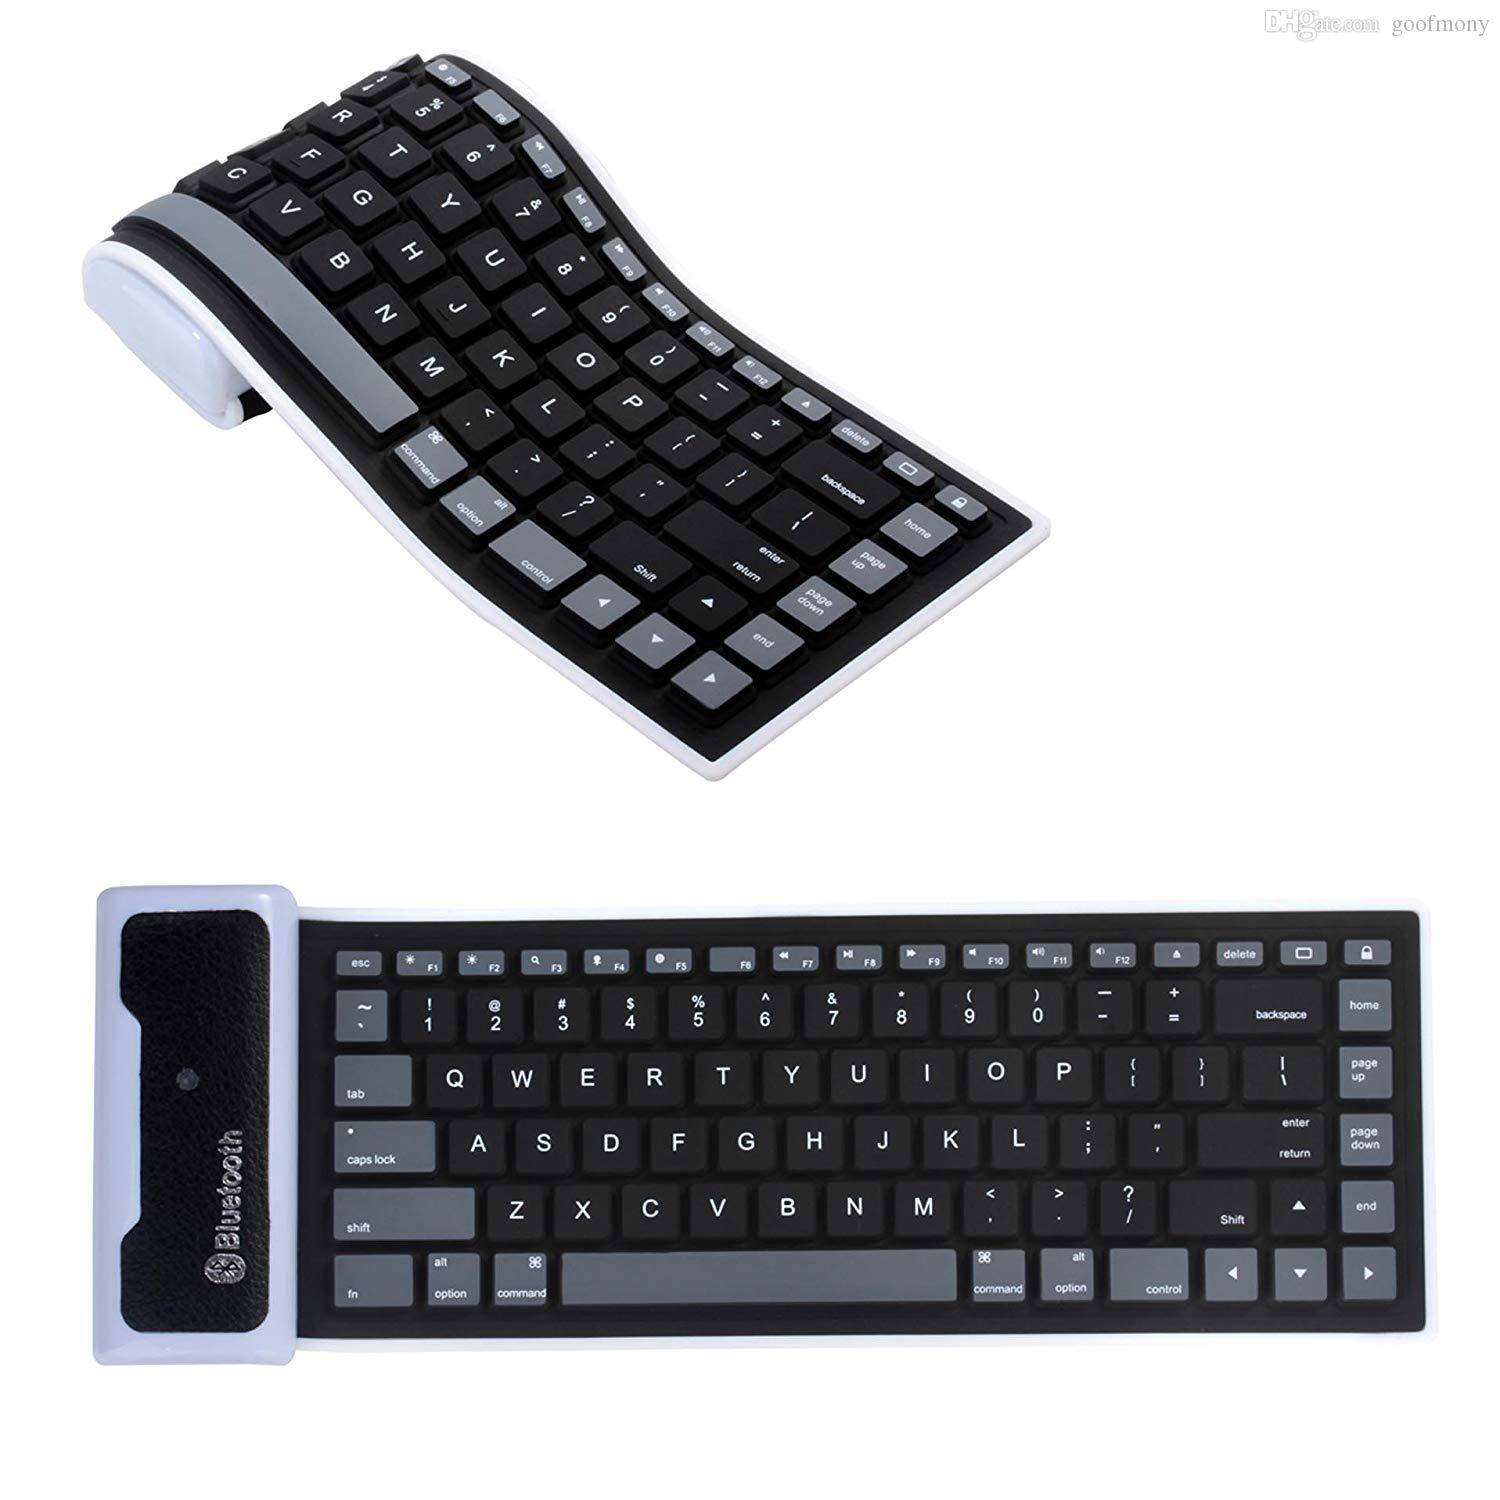 Roll up Mini Bluetooth Tastatur für Pad Tablets Handys Portable Silikon Rollup Wasserdichte Flexible Tastatur Schwarz